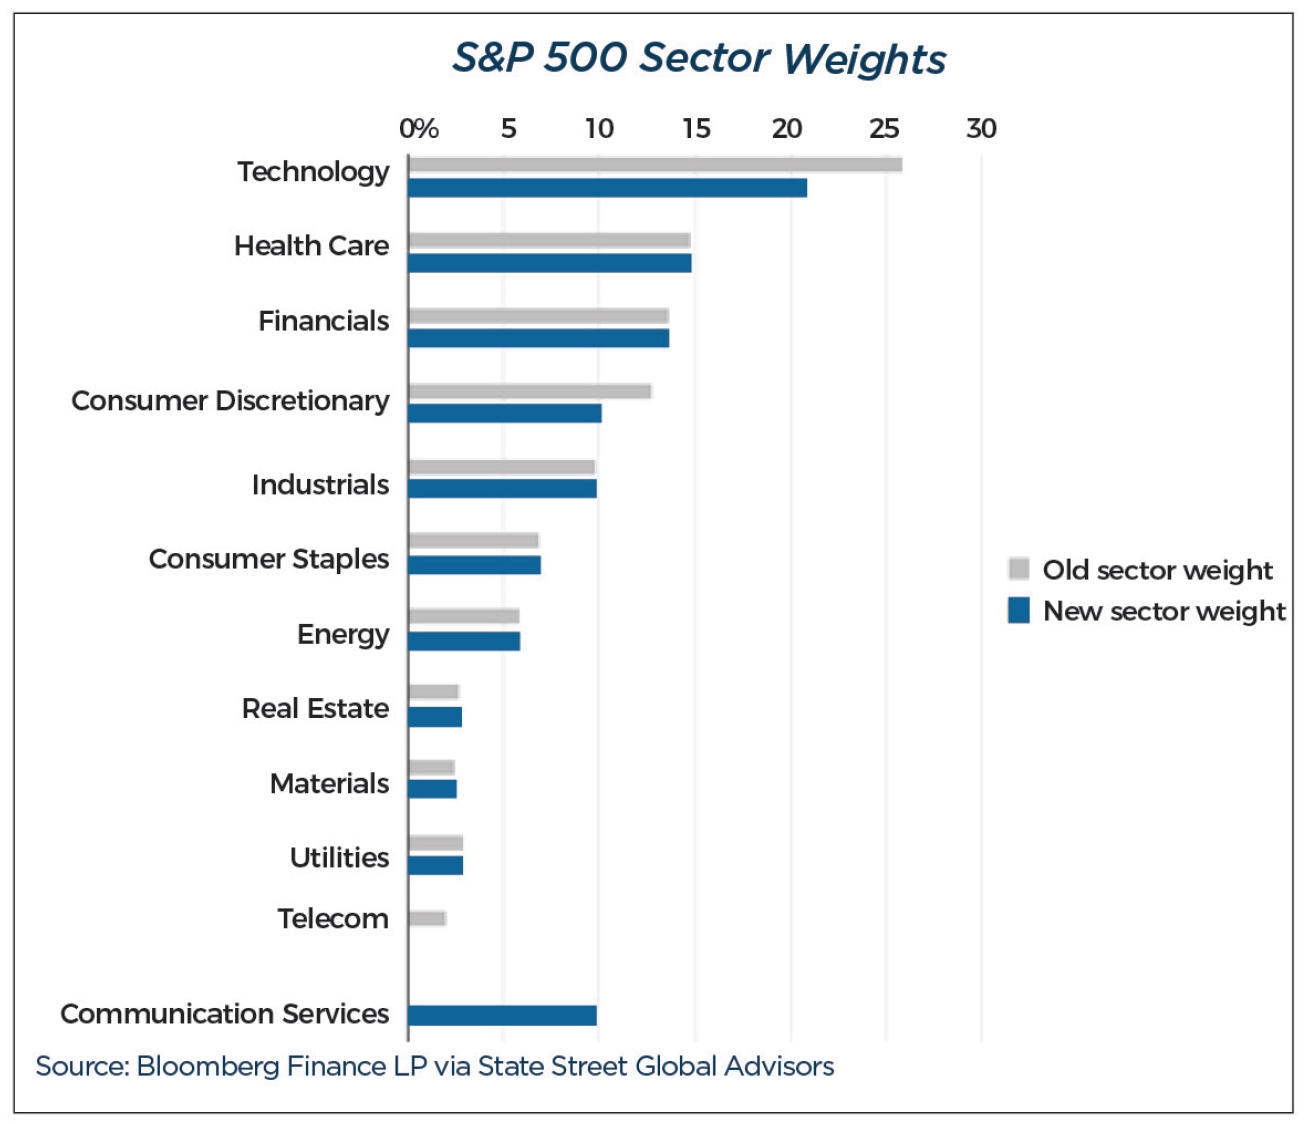 Graph showing S&P 500 Sector Weights for 3Q18.